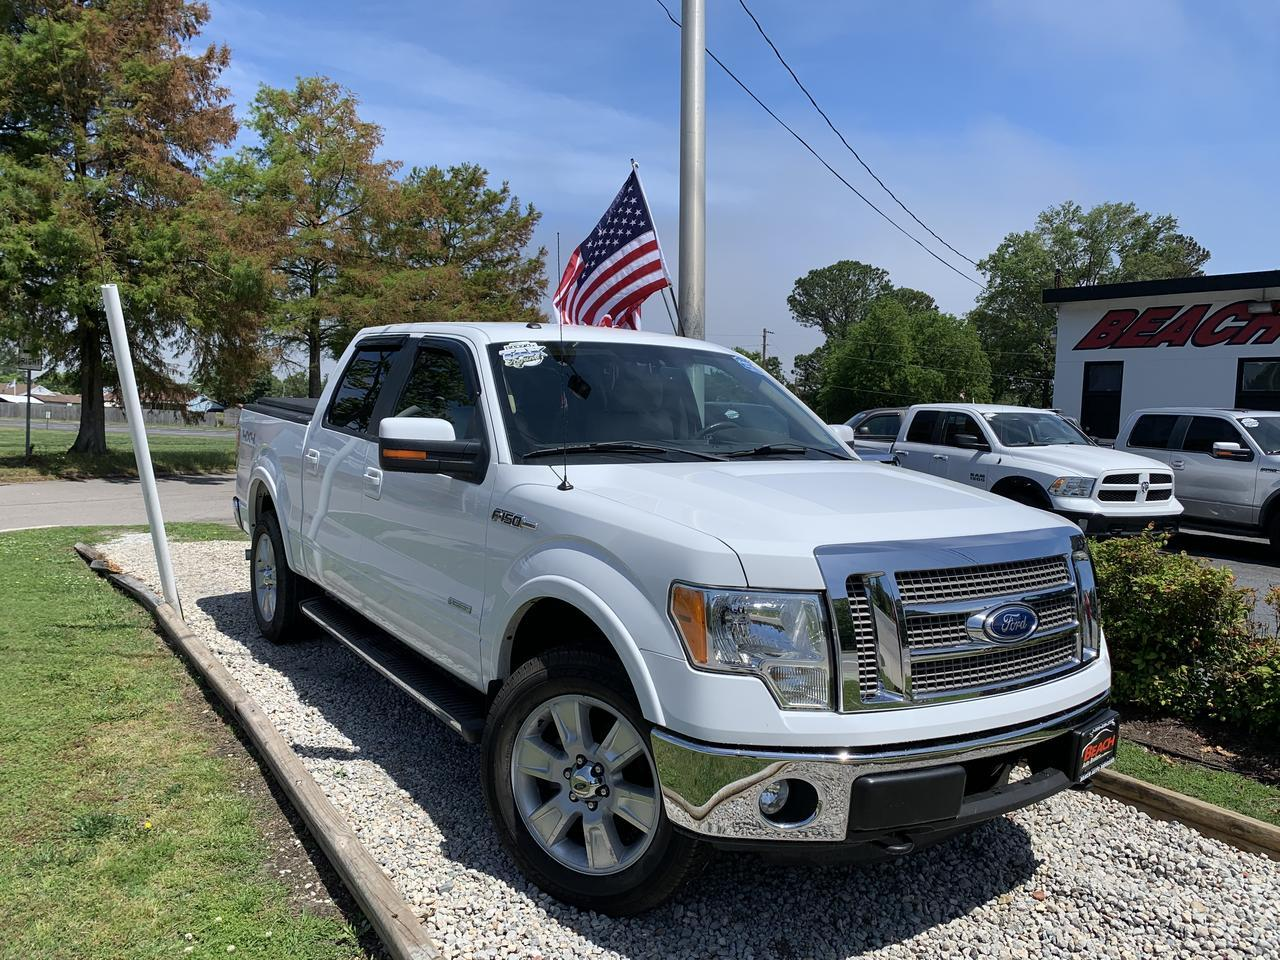 2011 FORD F-150 LARIAT SUPER CREW 4X4, WARRANTY, LEATHER, HEATED SEATS, OFF ROAD PKG, SIRIUS RADIO, BLUETOOTH!